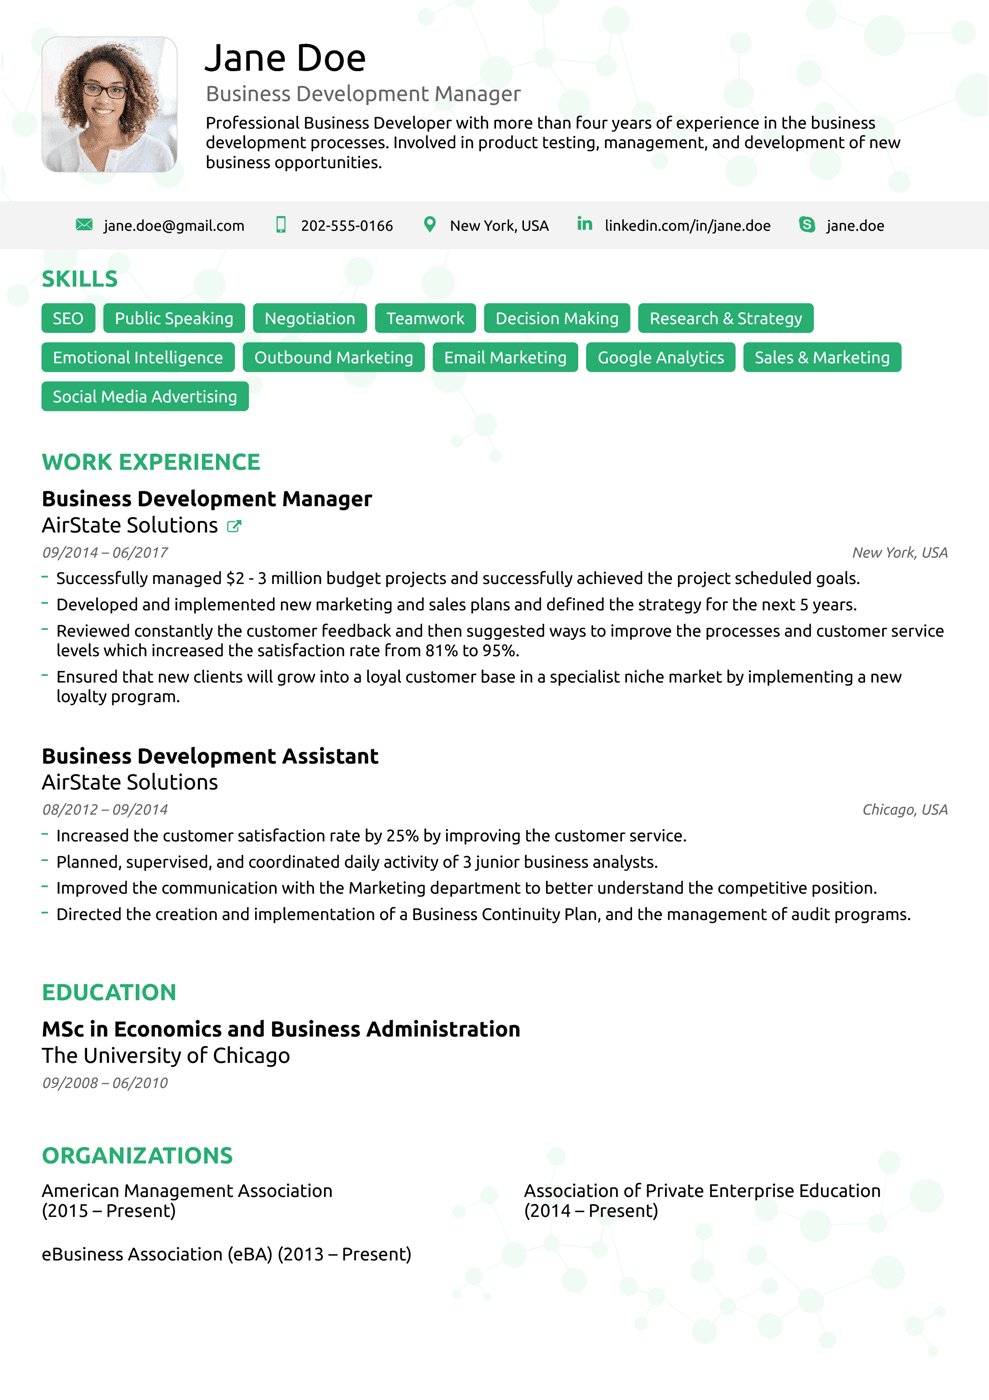 Student Resume Template | 8 Best Online Resume Templates Of 2019 Download Customize